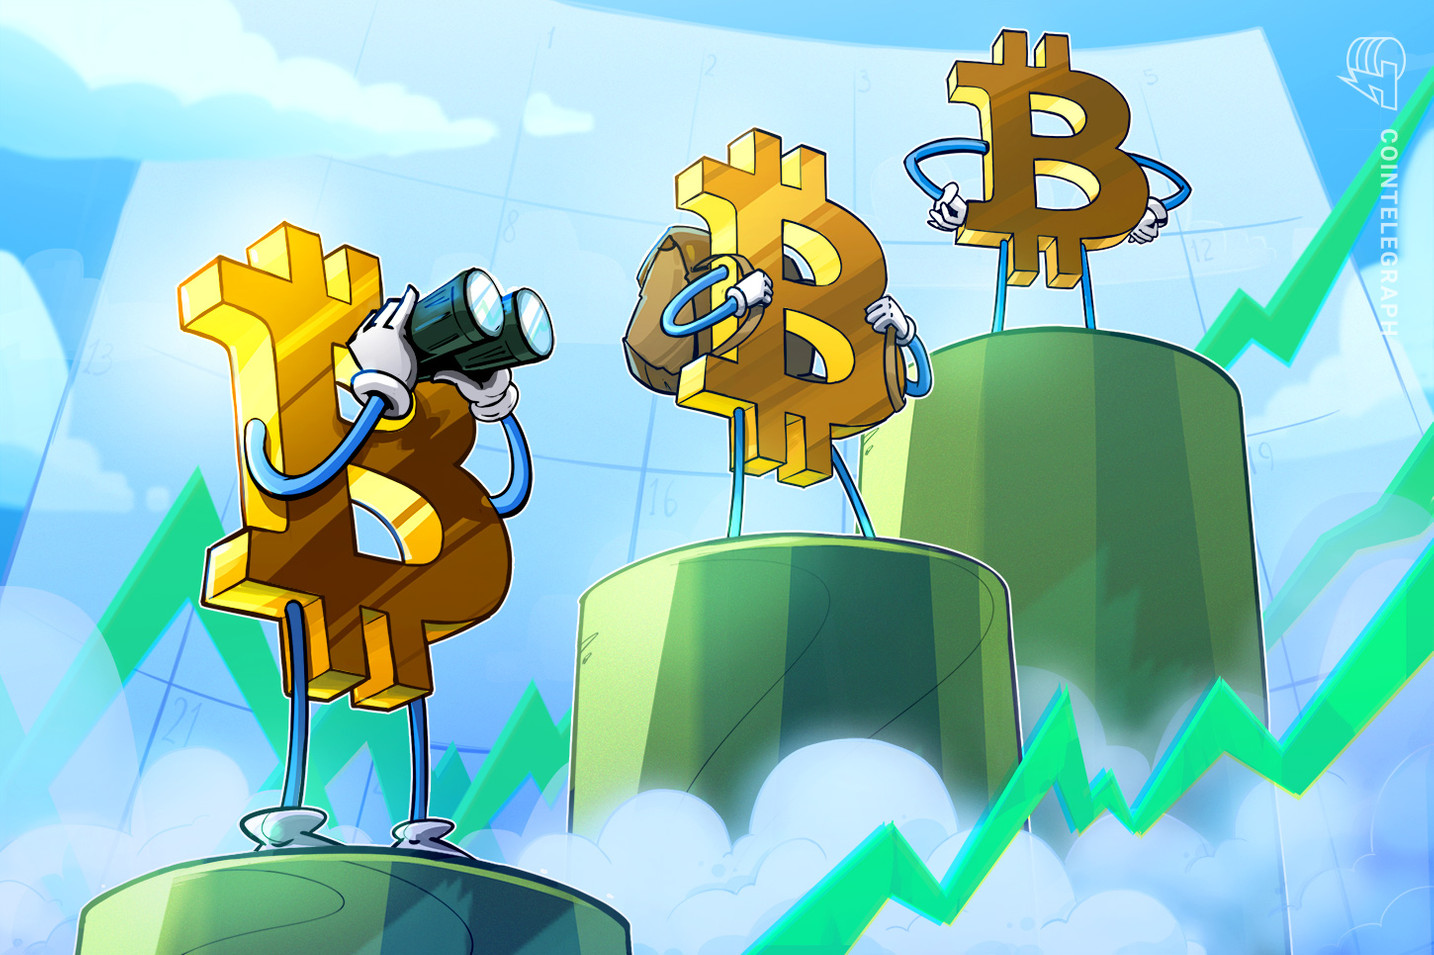 'Insane' Bitcoin price consolidation means $48K is the new BTC support level